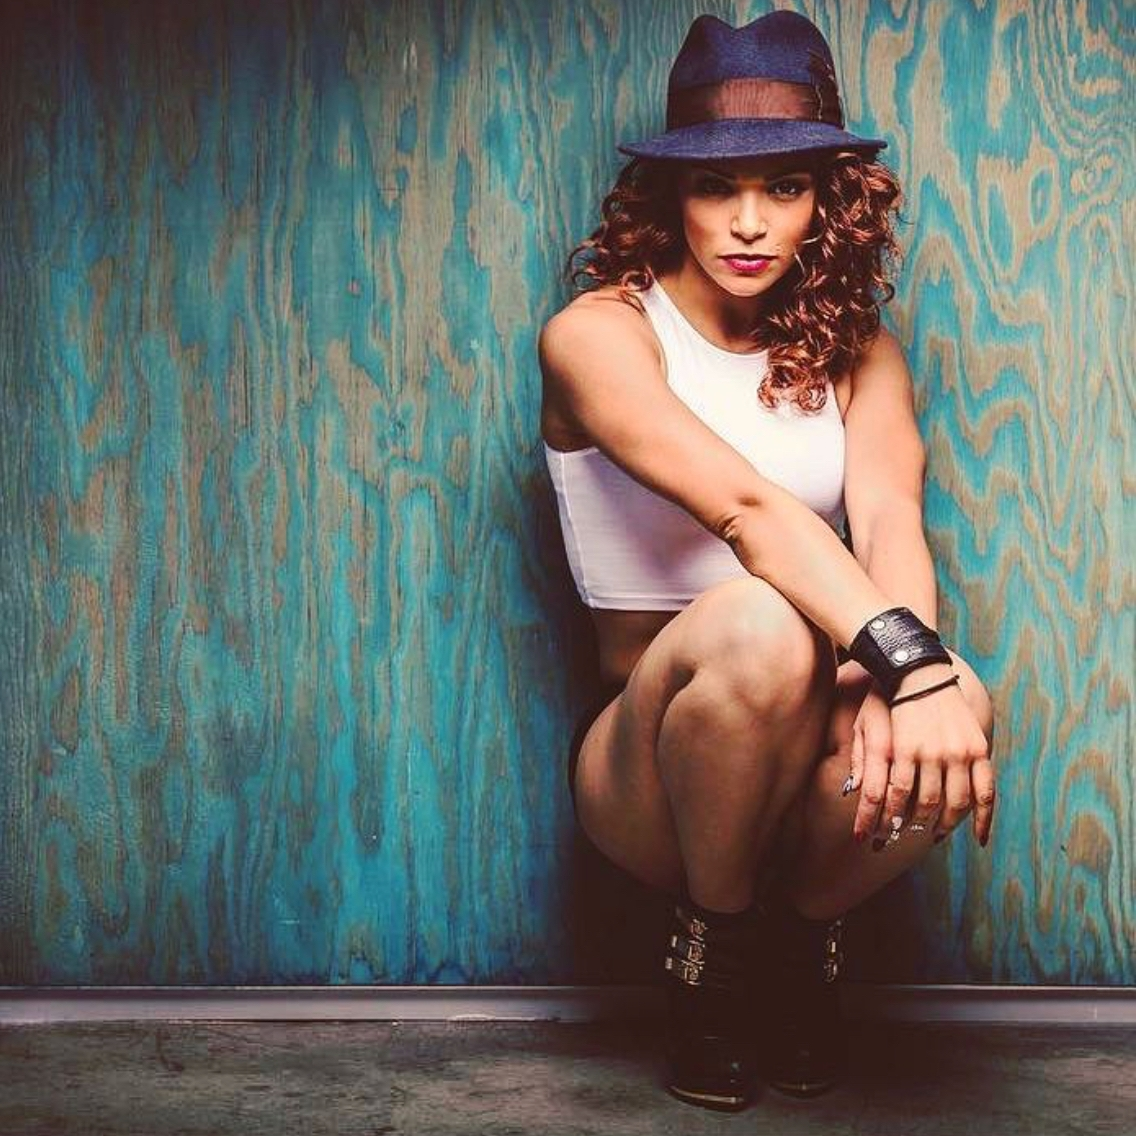 KNICOLE HAGGINS   STYLES: Hip Hop Fusion Move and Groove  CREDITS:  Bloc Talent Usher Lady Gaga Prince Chris Brown Director - Developing Next Artist Alice King  FOLLOW: Instagram:  @flavorfulsoul